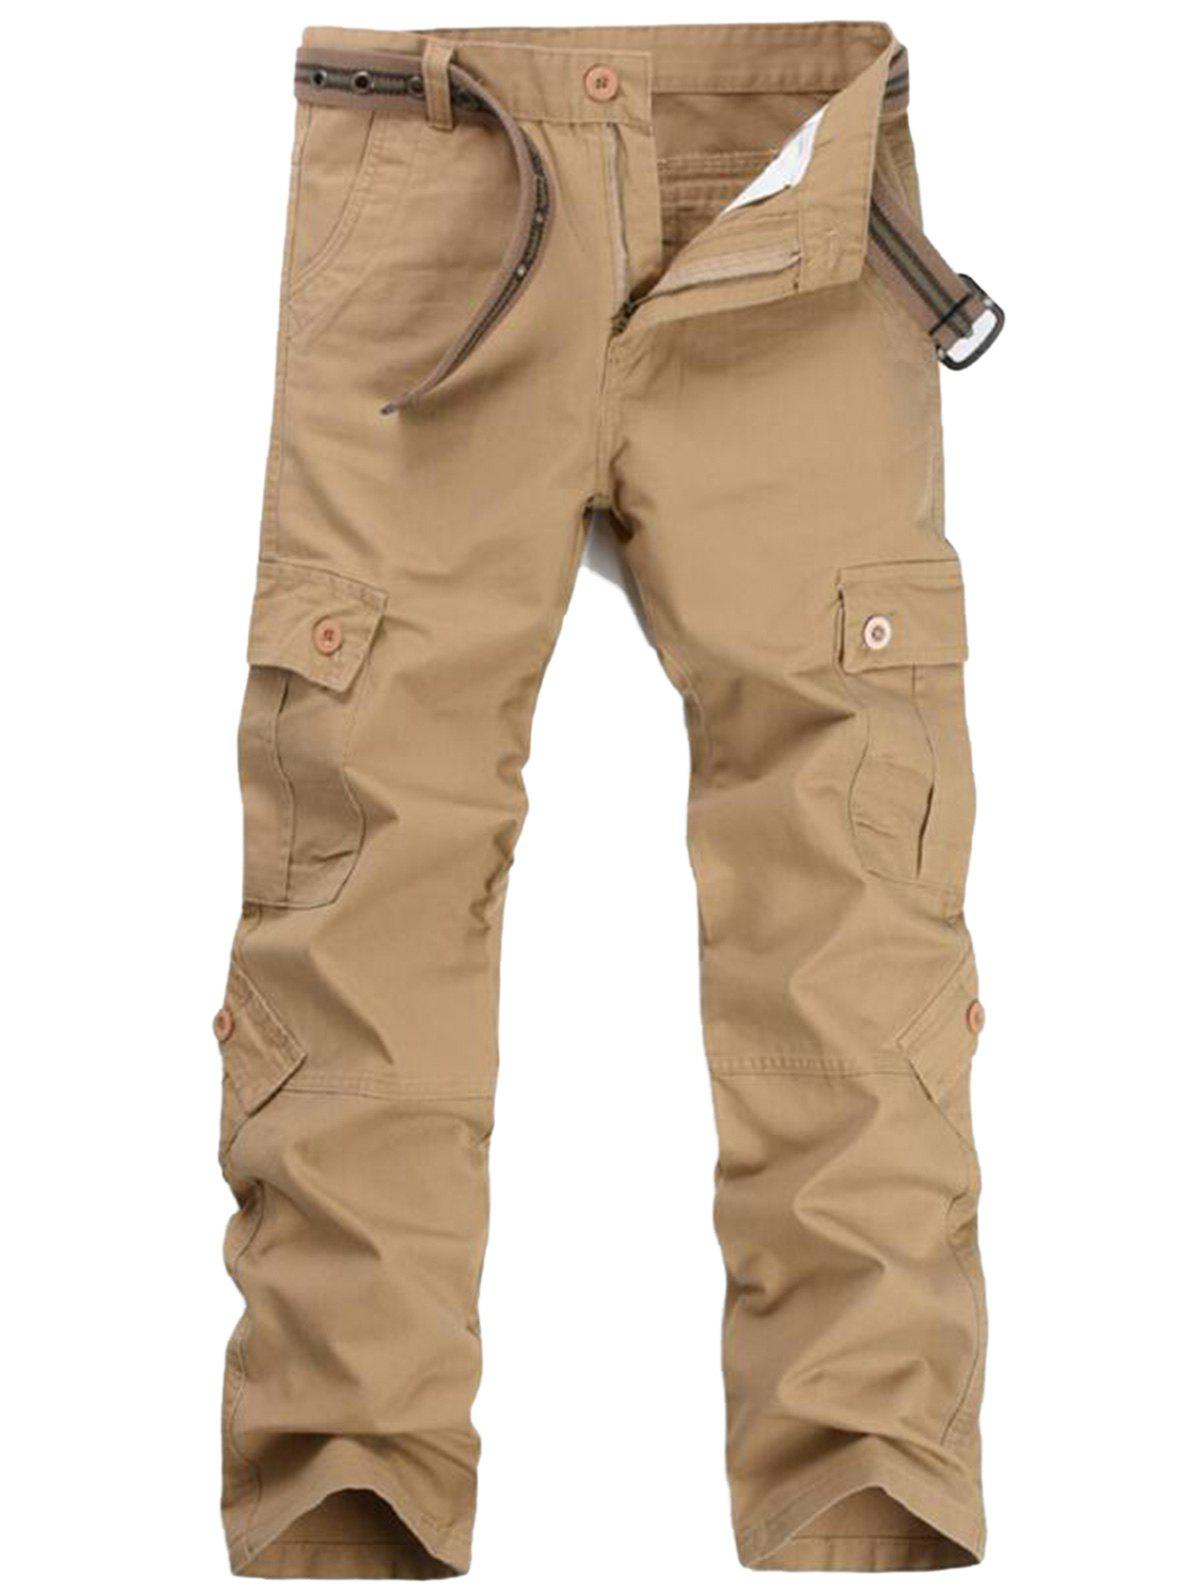 Pockets Straight Leg Cargo Pants - KHAKI 32